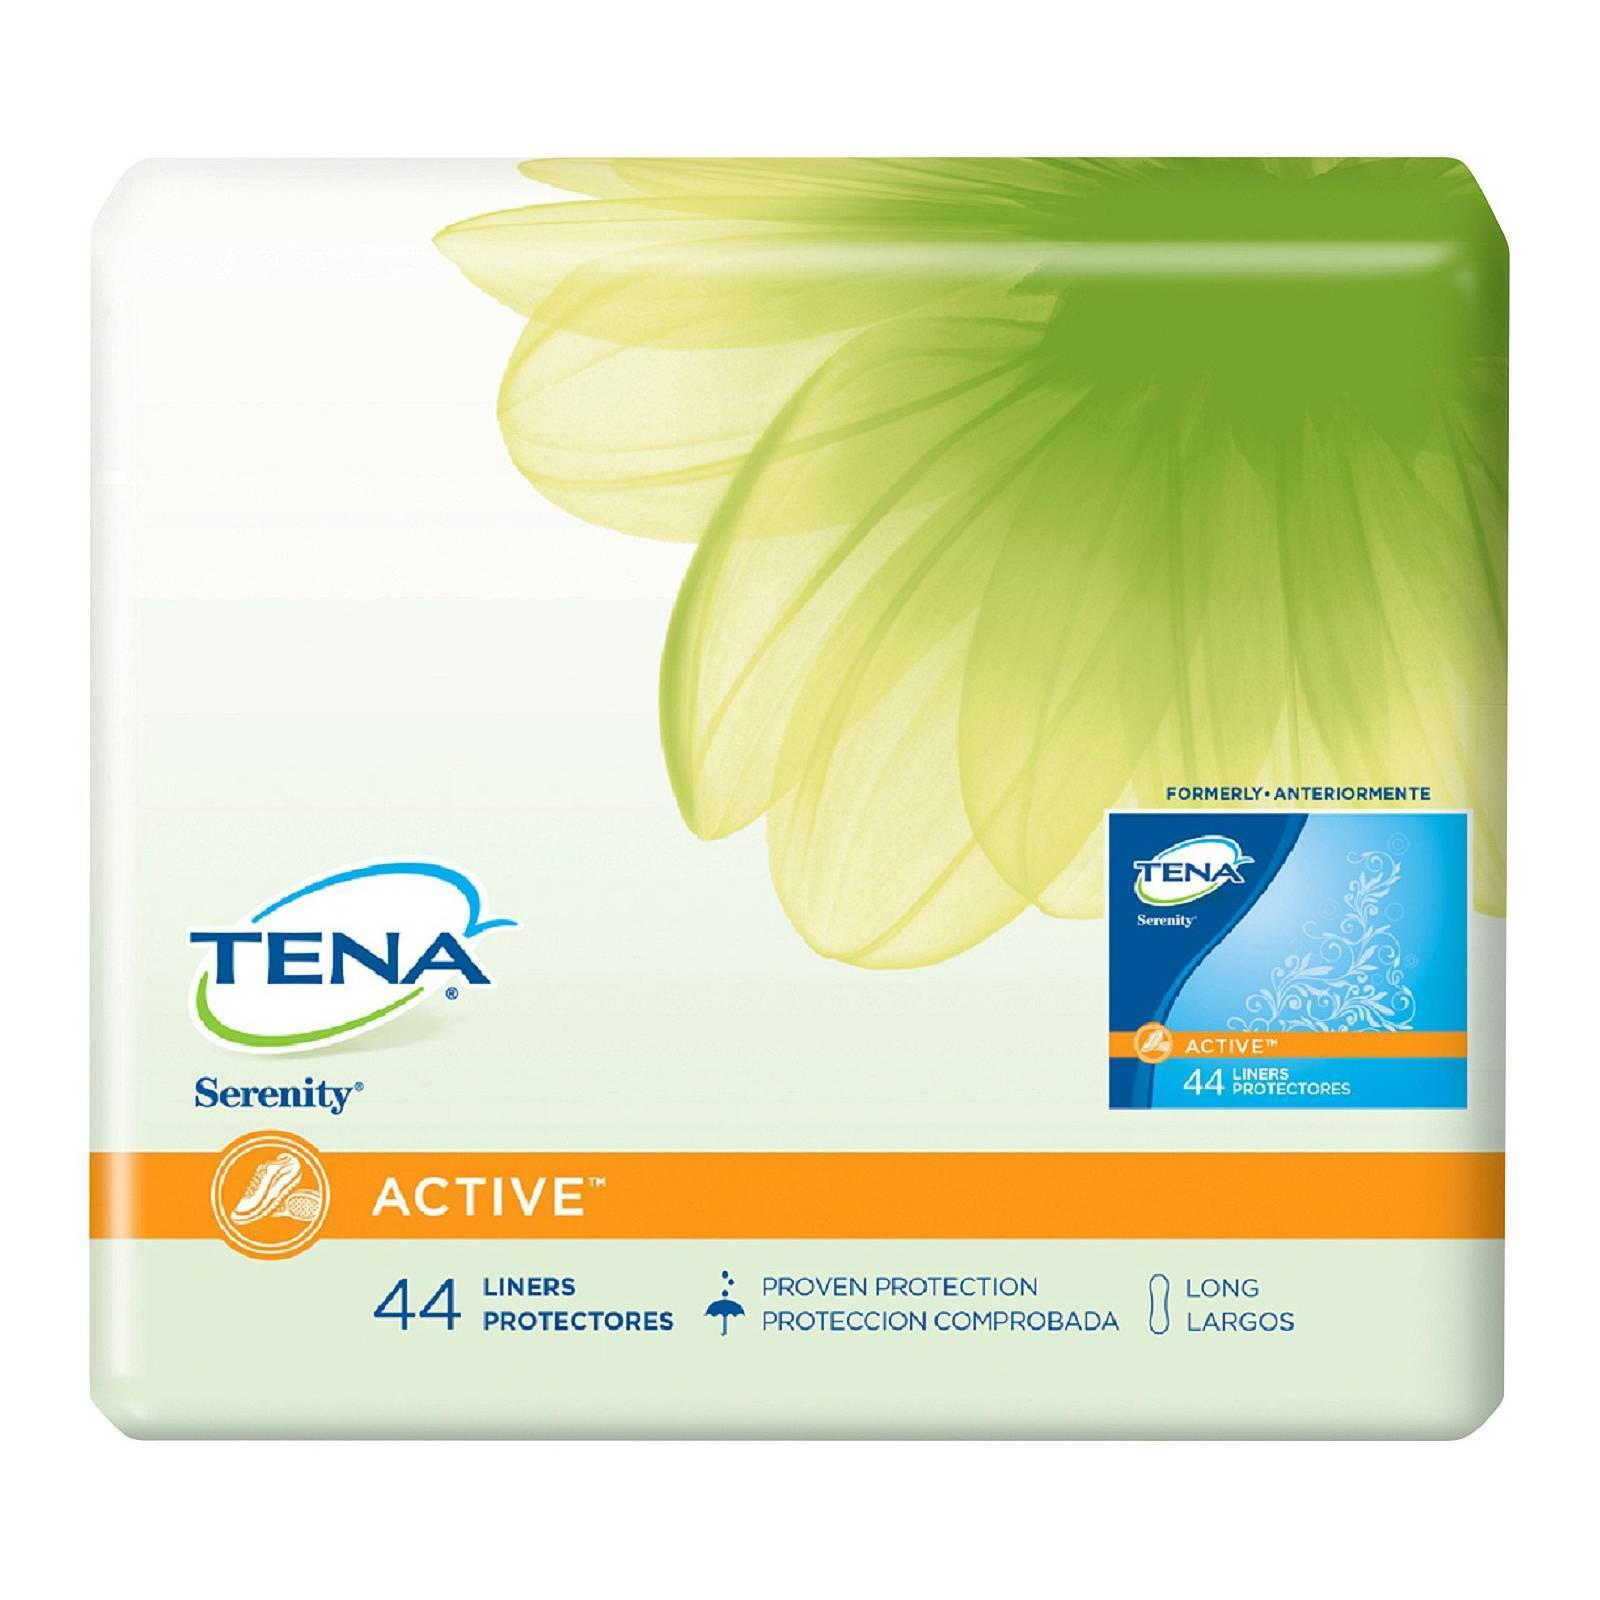 Tena Serenity Active Pantiliners Liners Long 44 Count